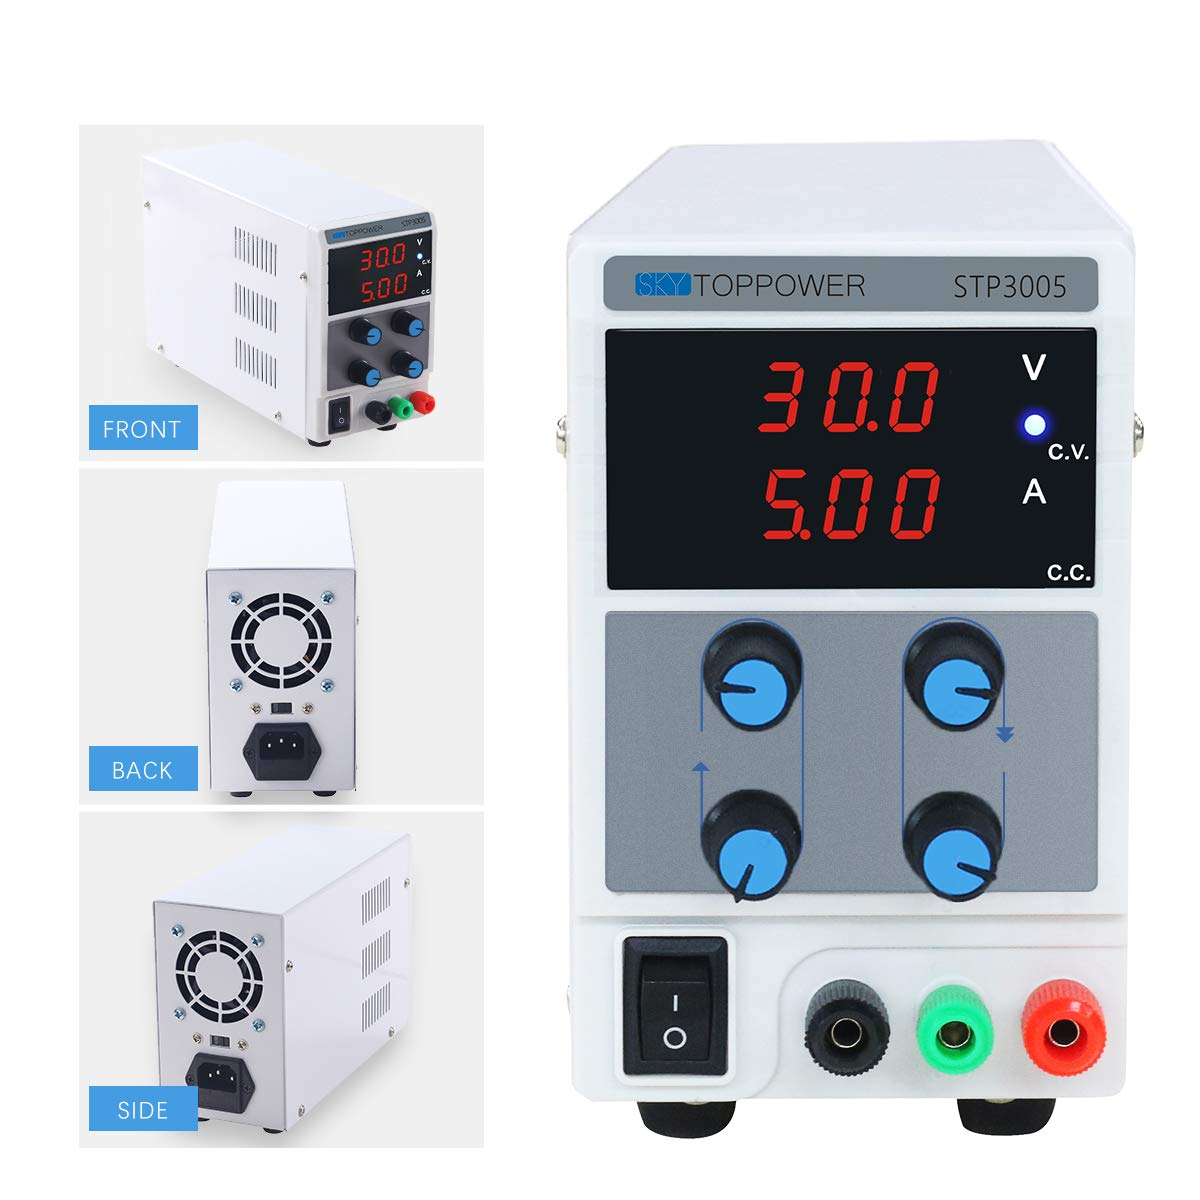 DC Power Supply Variable, Adjustable Switching Regulated